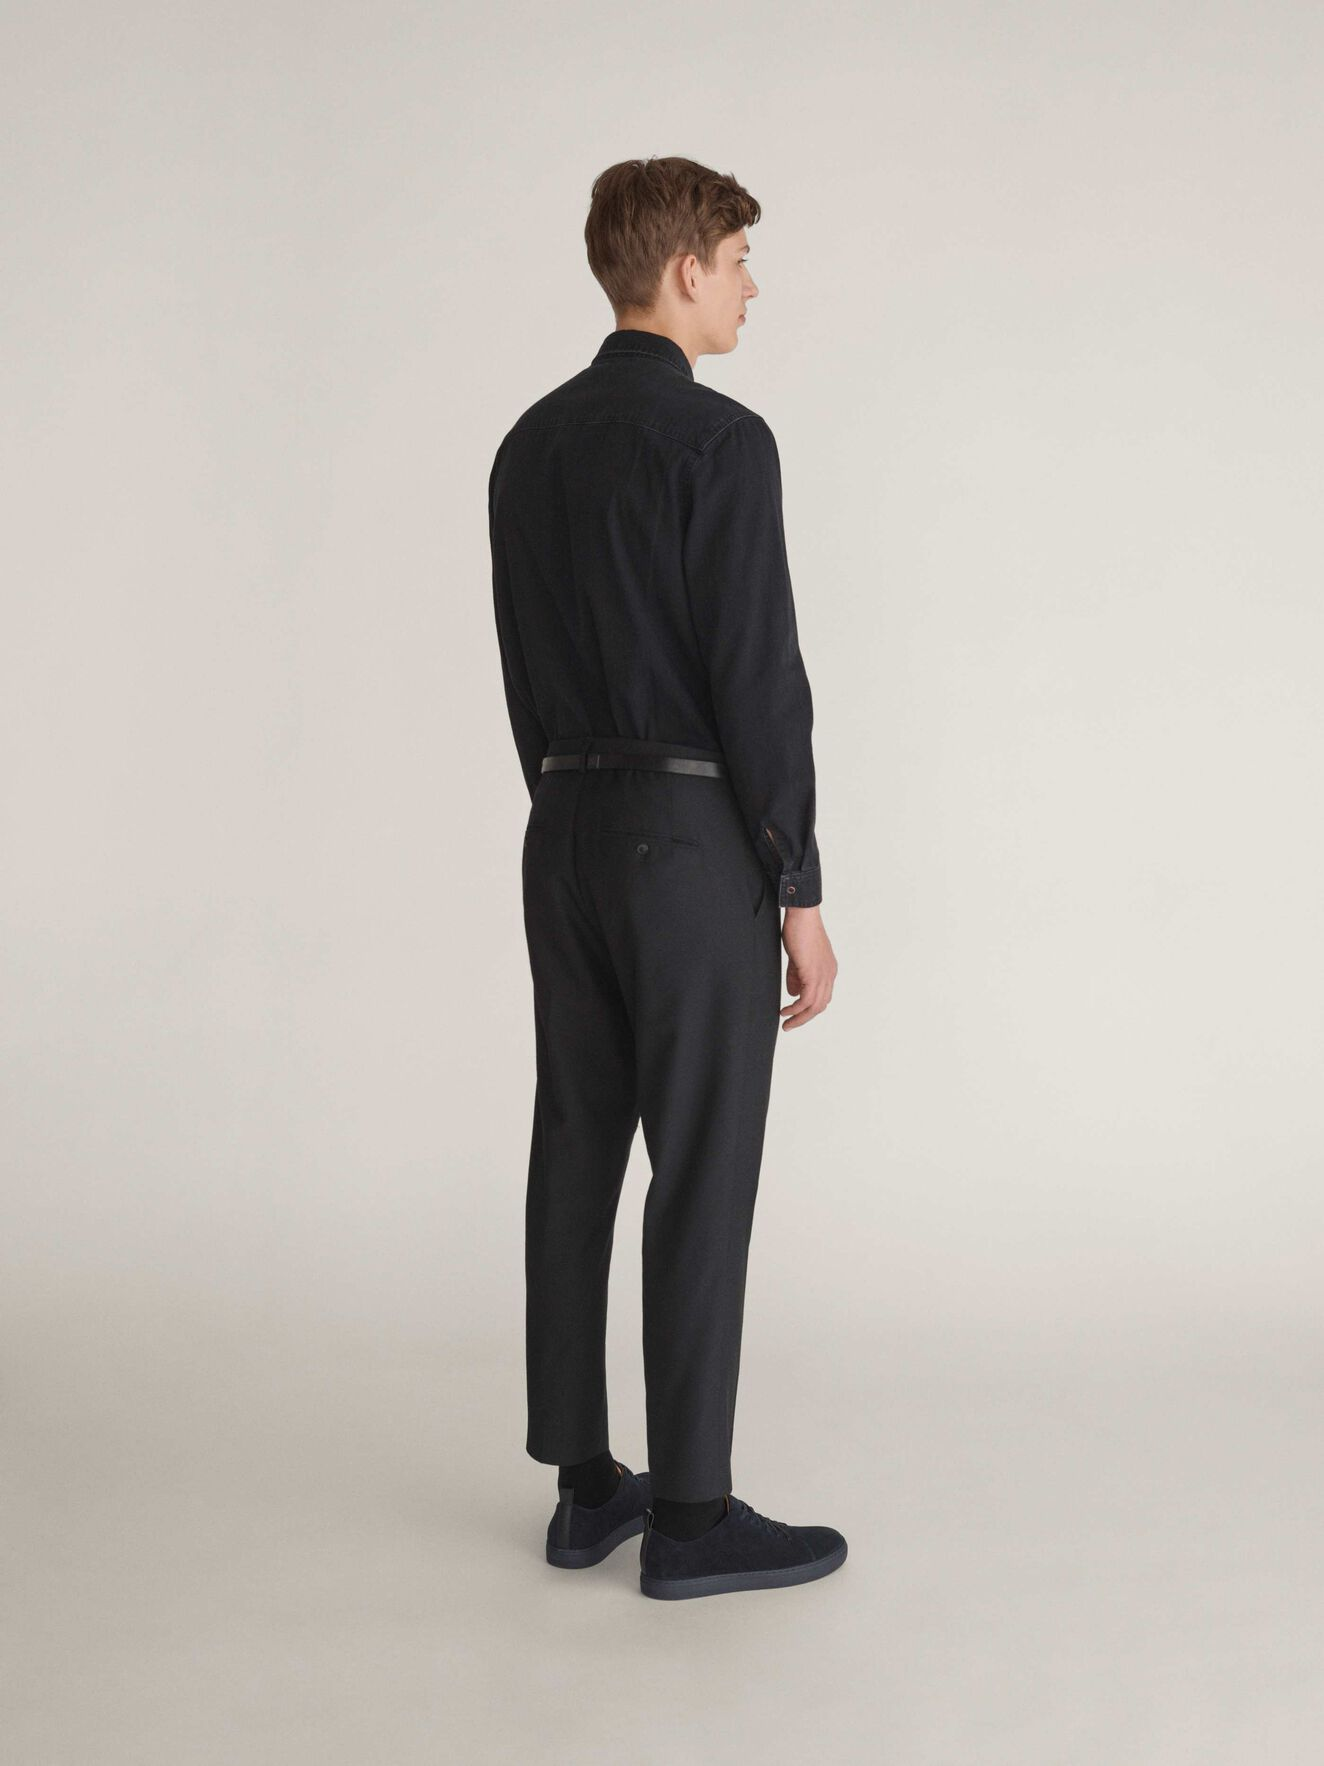 Pure I Shirt in Black from Tiger of Sweden